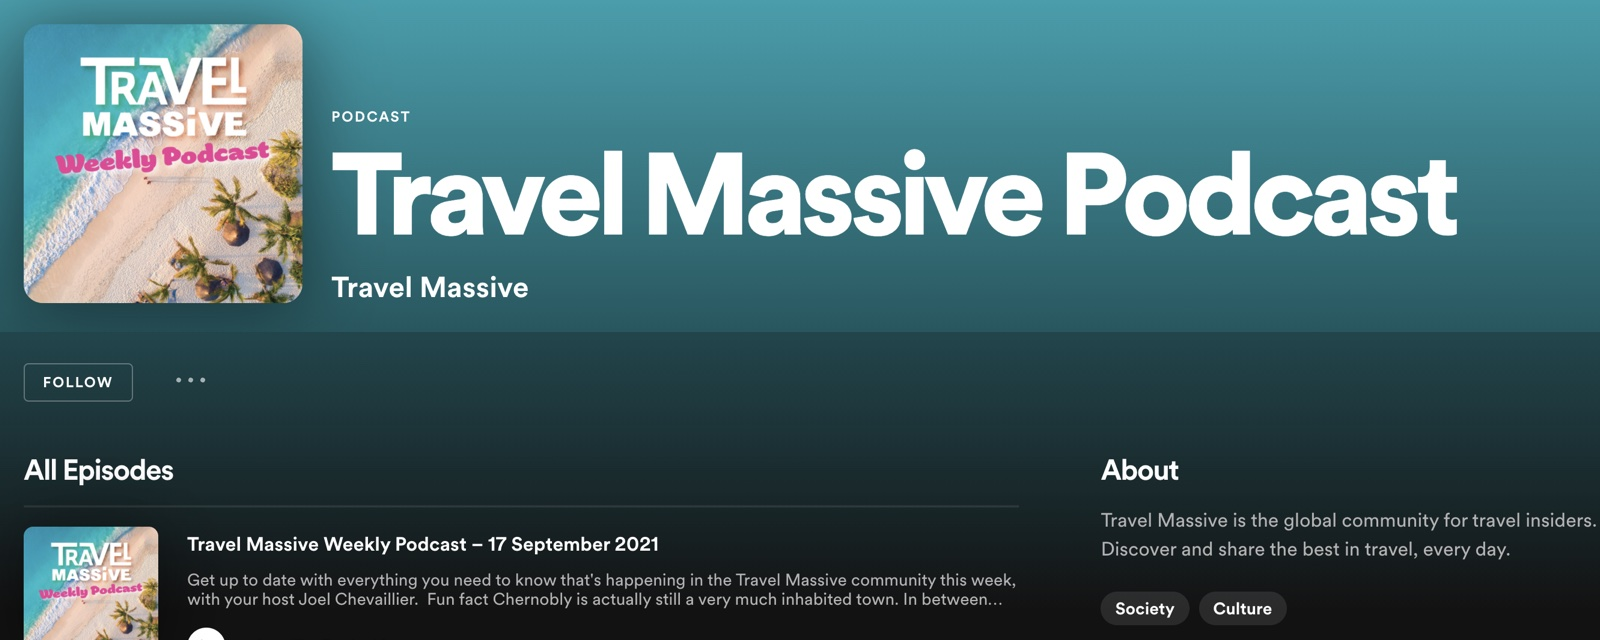 Picture of Travel Massive podcast on Spotify website.